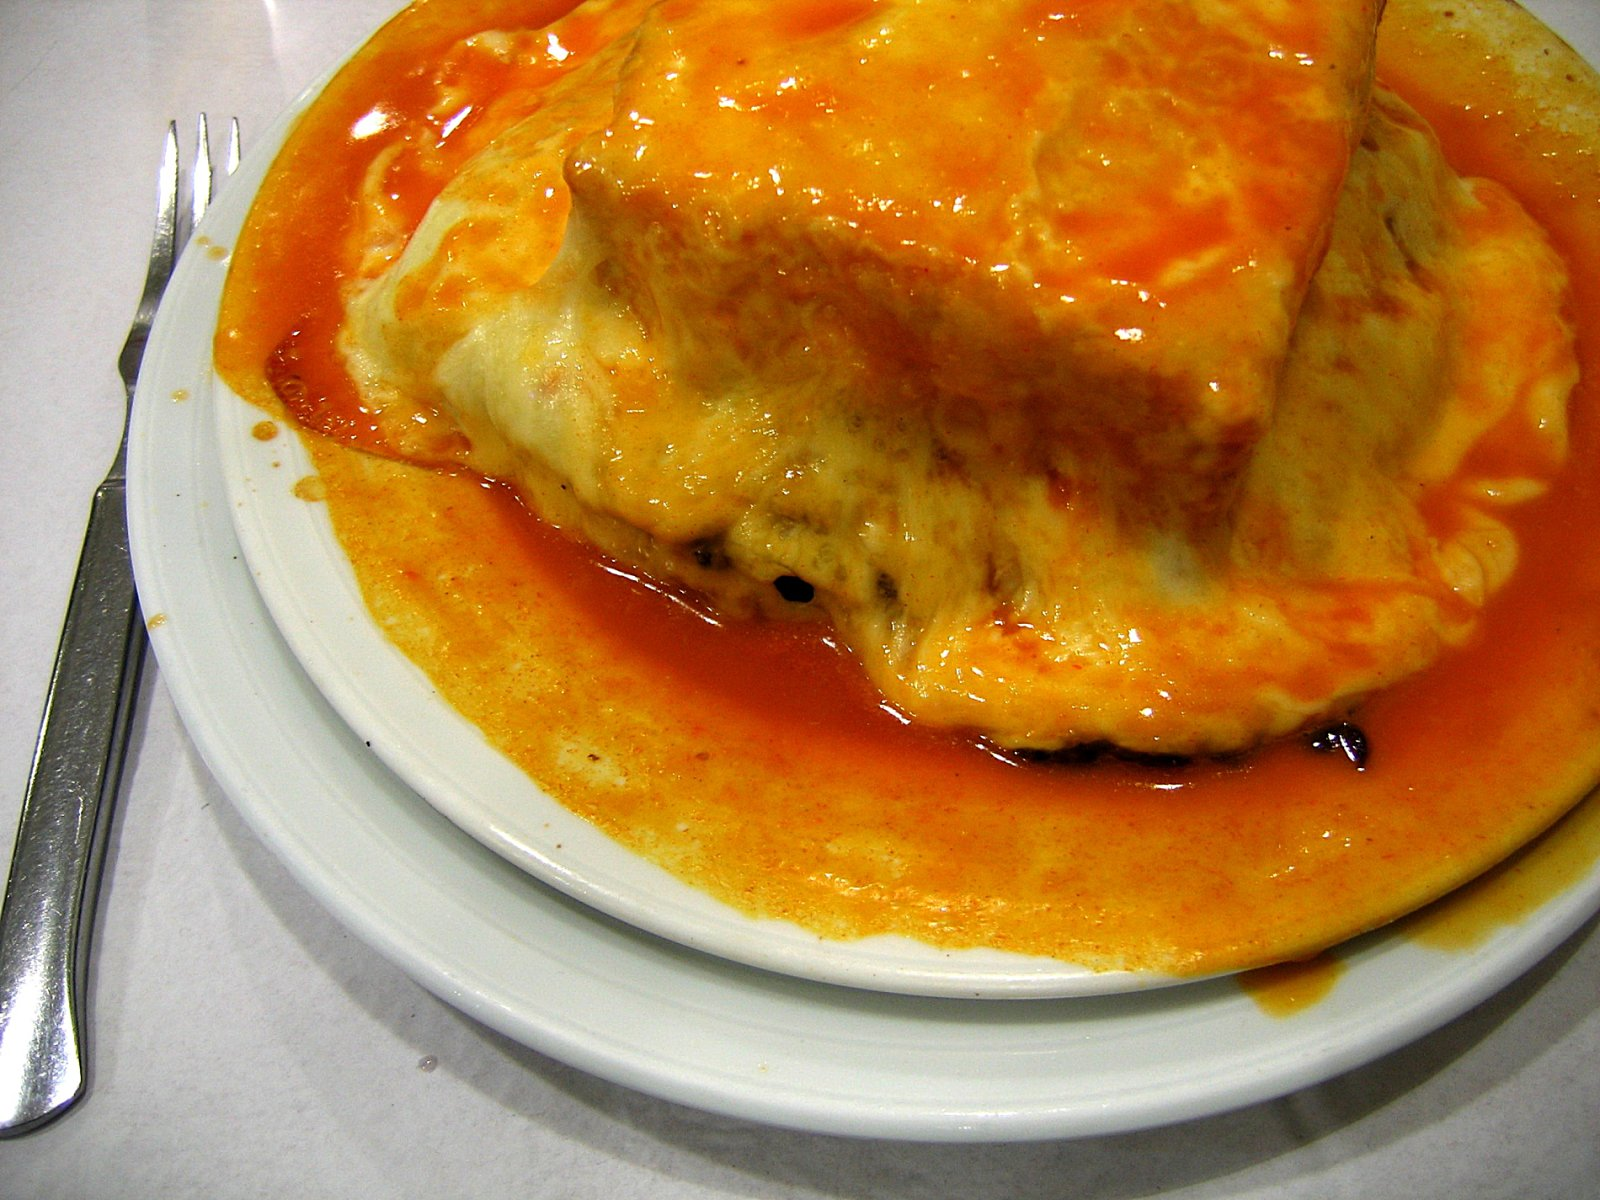 Francesinha wikipedia a enciclopedia libre for Cocina moderna wikipedia